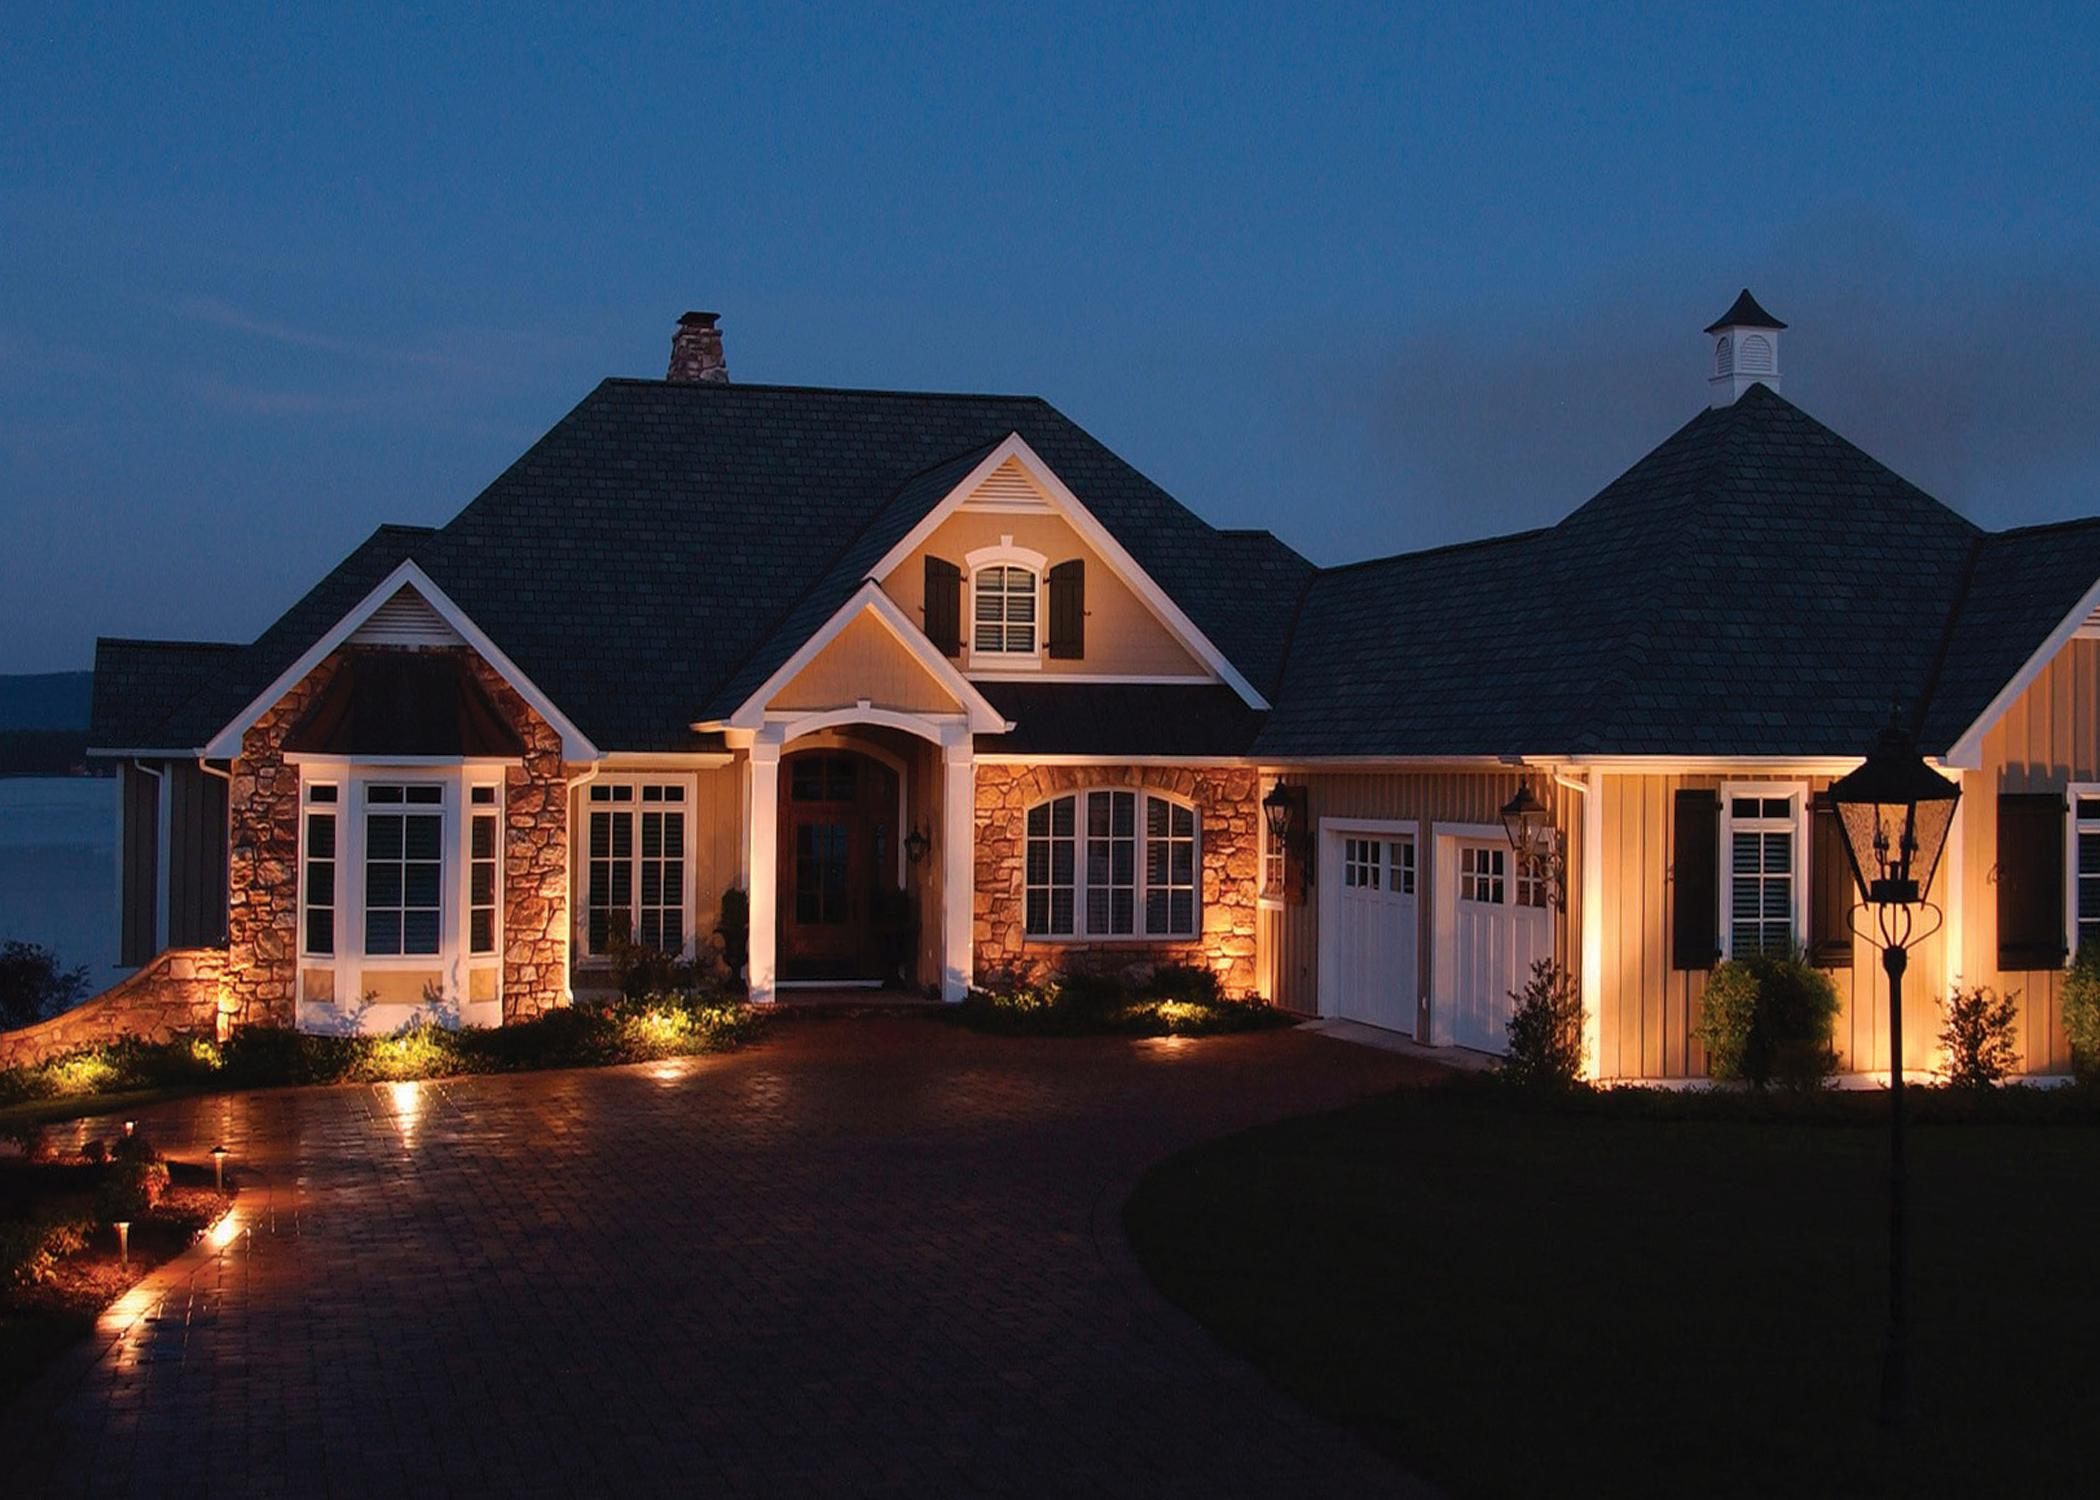 Dayton Ohio Residential & mercial Outdoor Lighting